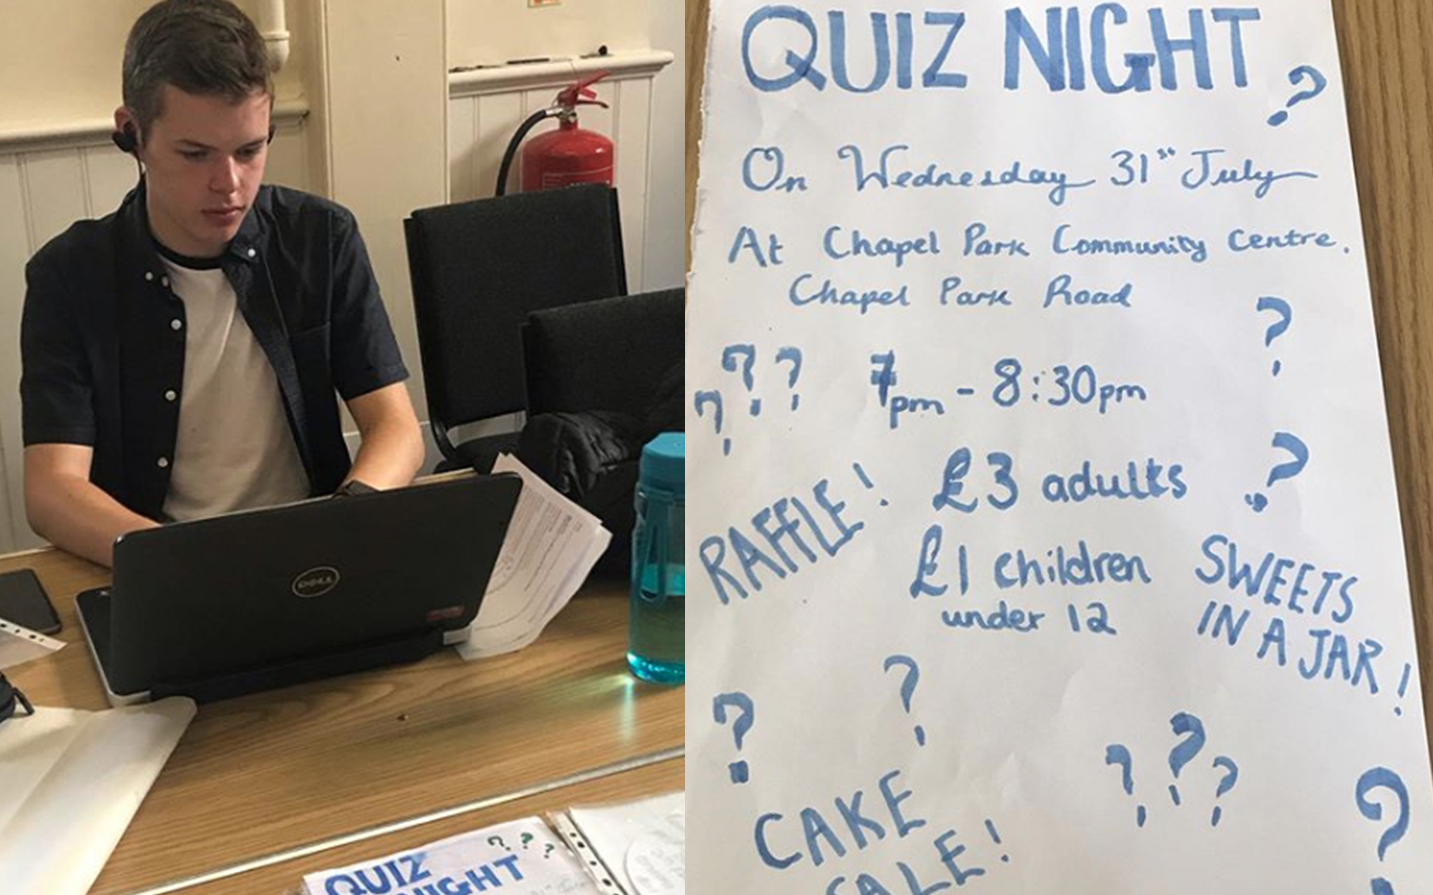 Tom working on a laptop, flyer for Team One's quiz night